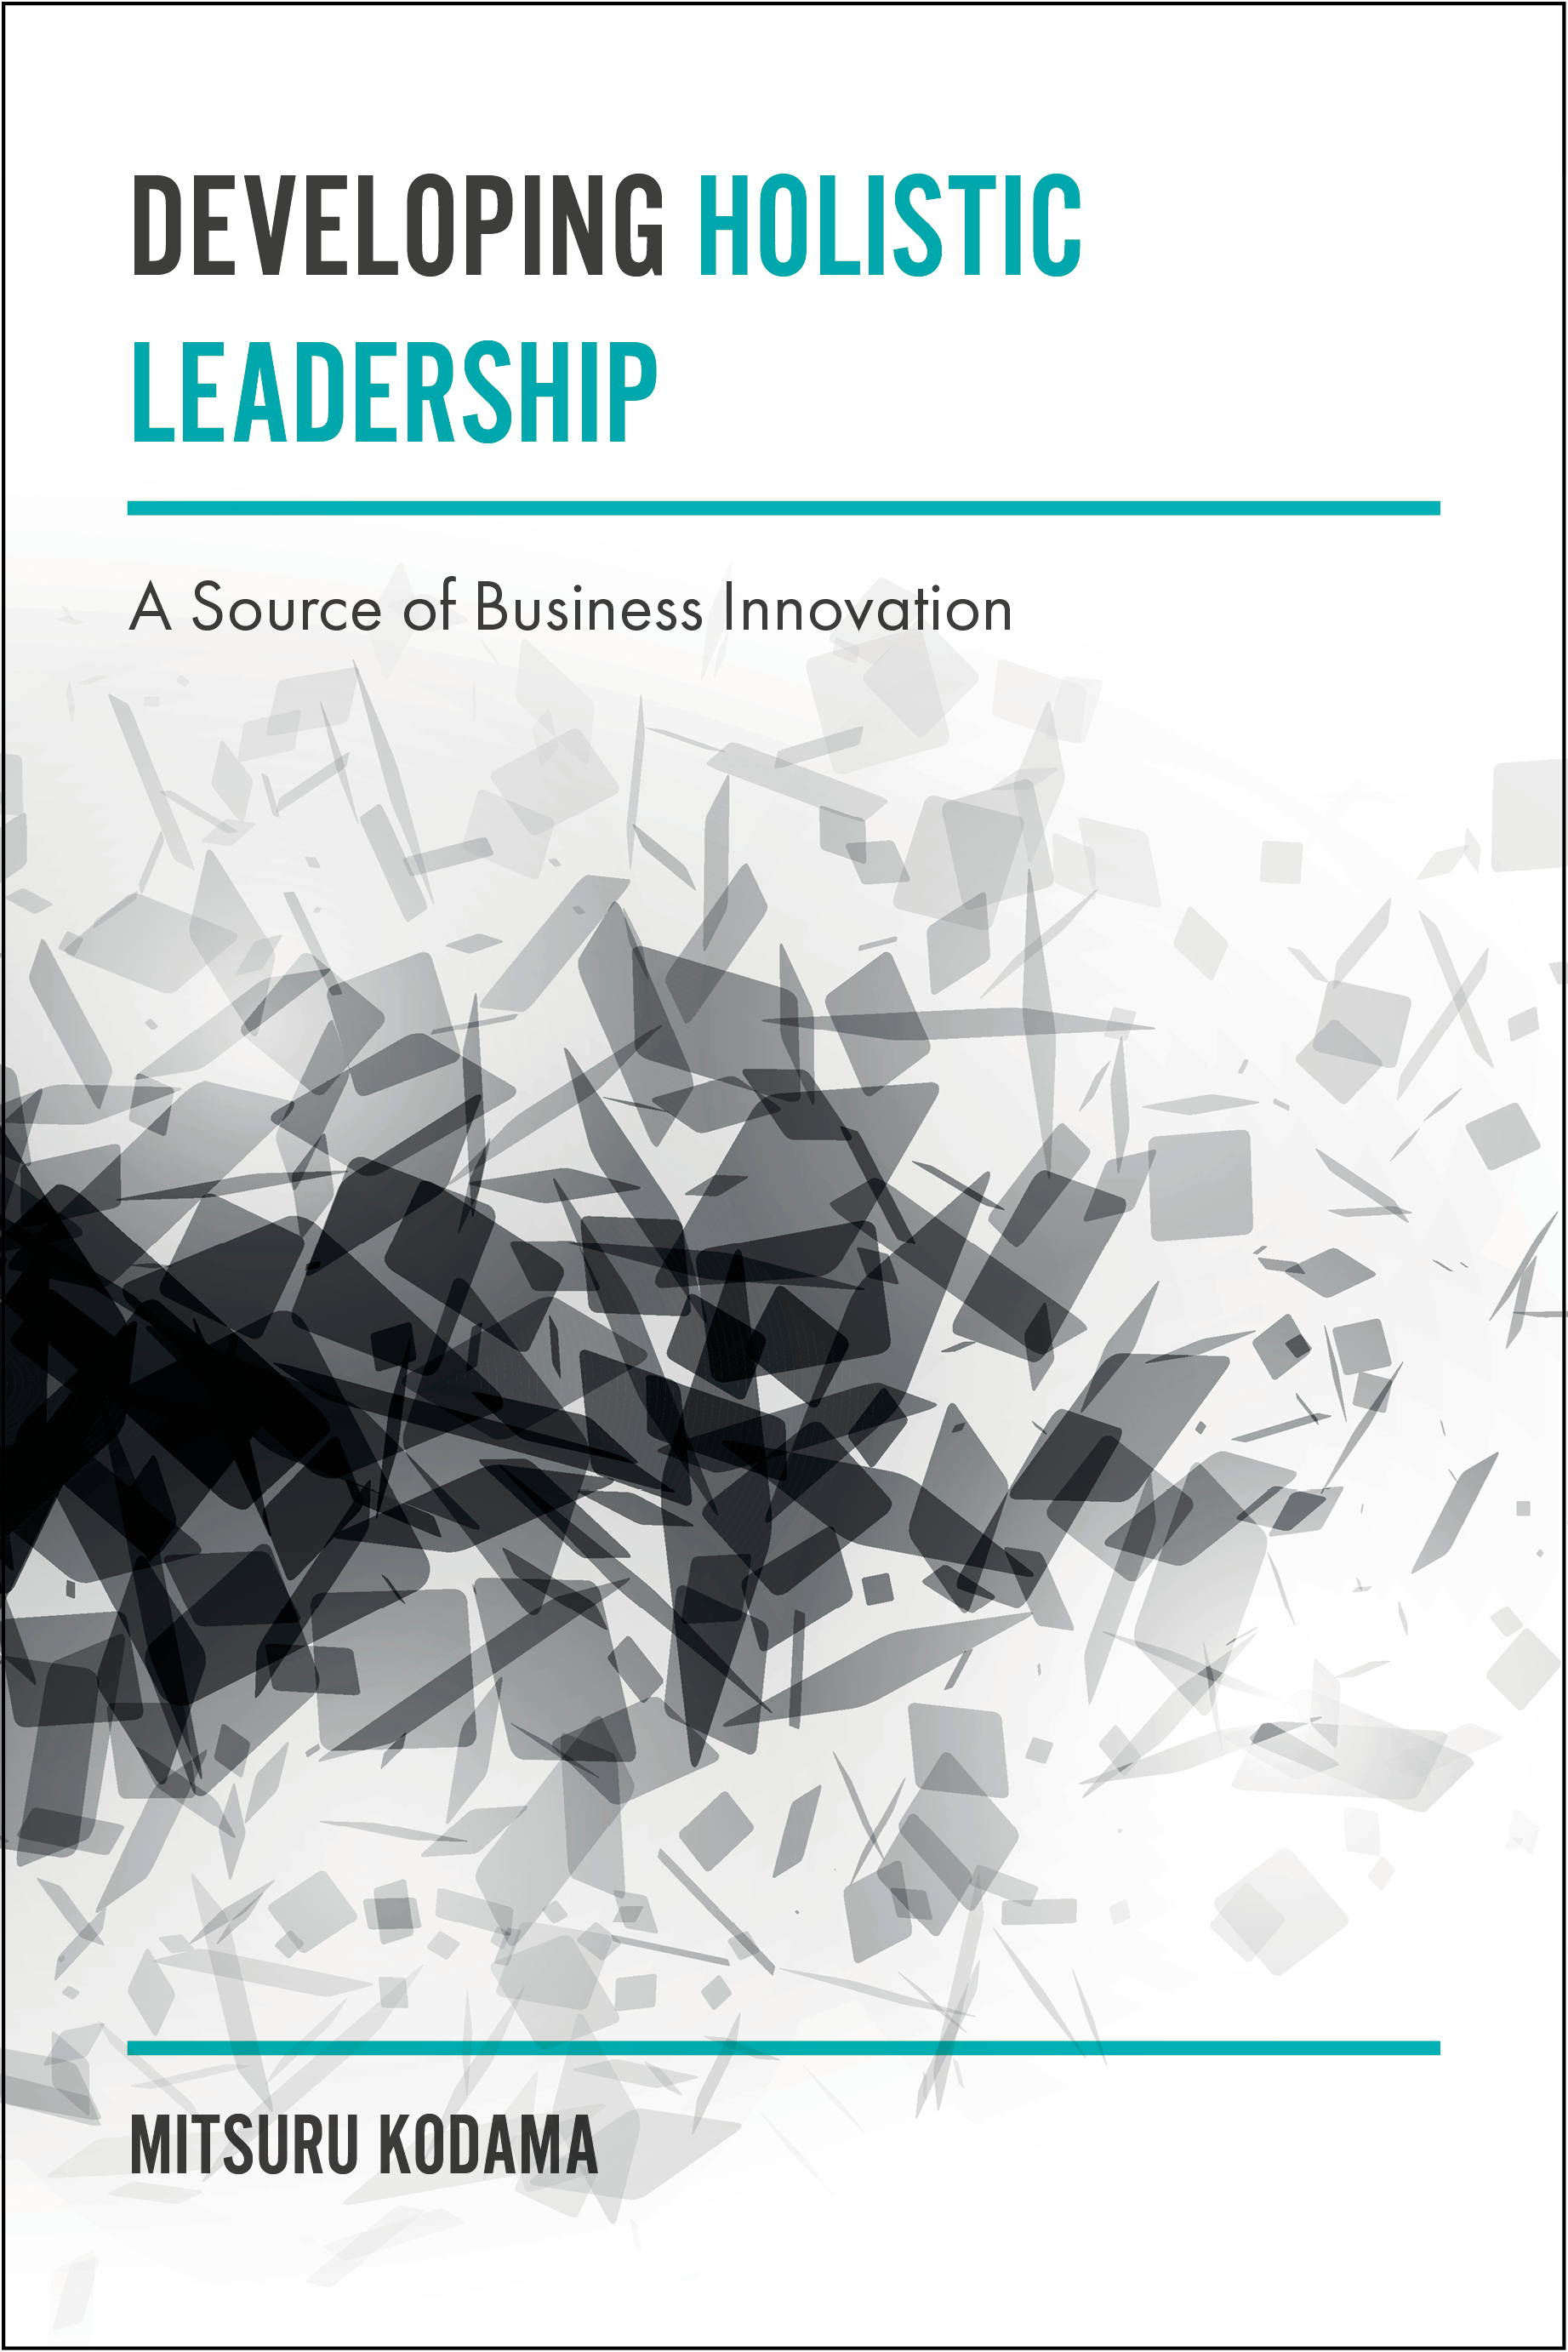 Book cover for Developing Holistic Leadership:  A Source of Business Innovation a book by Mitsuru  Kodama